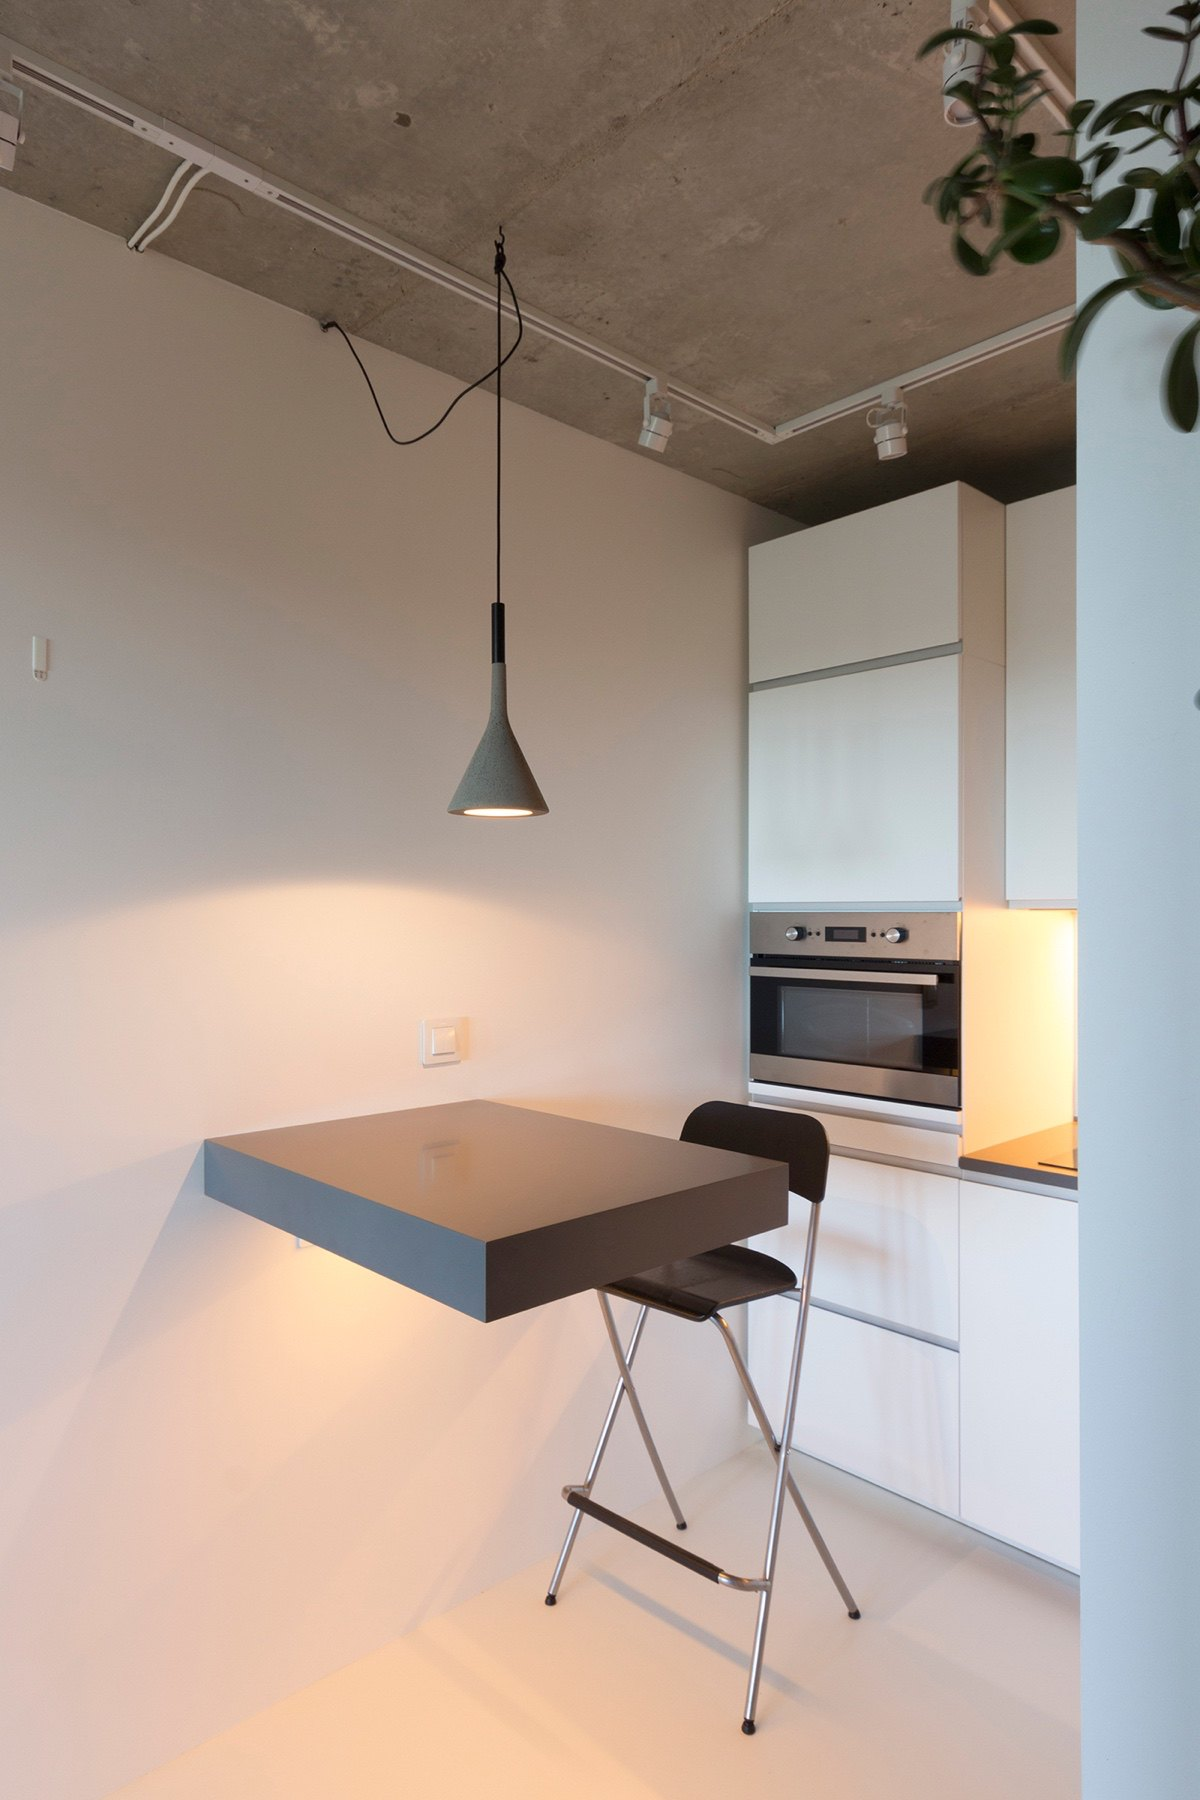 Under Sqm Apartment Kitchen Grey Hanging Light Small Grey Table Ledge Directors High Chair - Super small studio apartment under 50 square meters includes floor plan